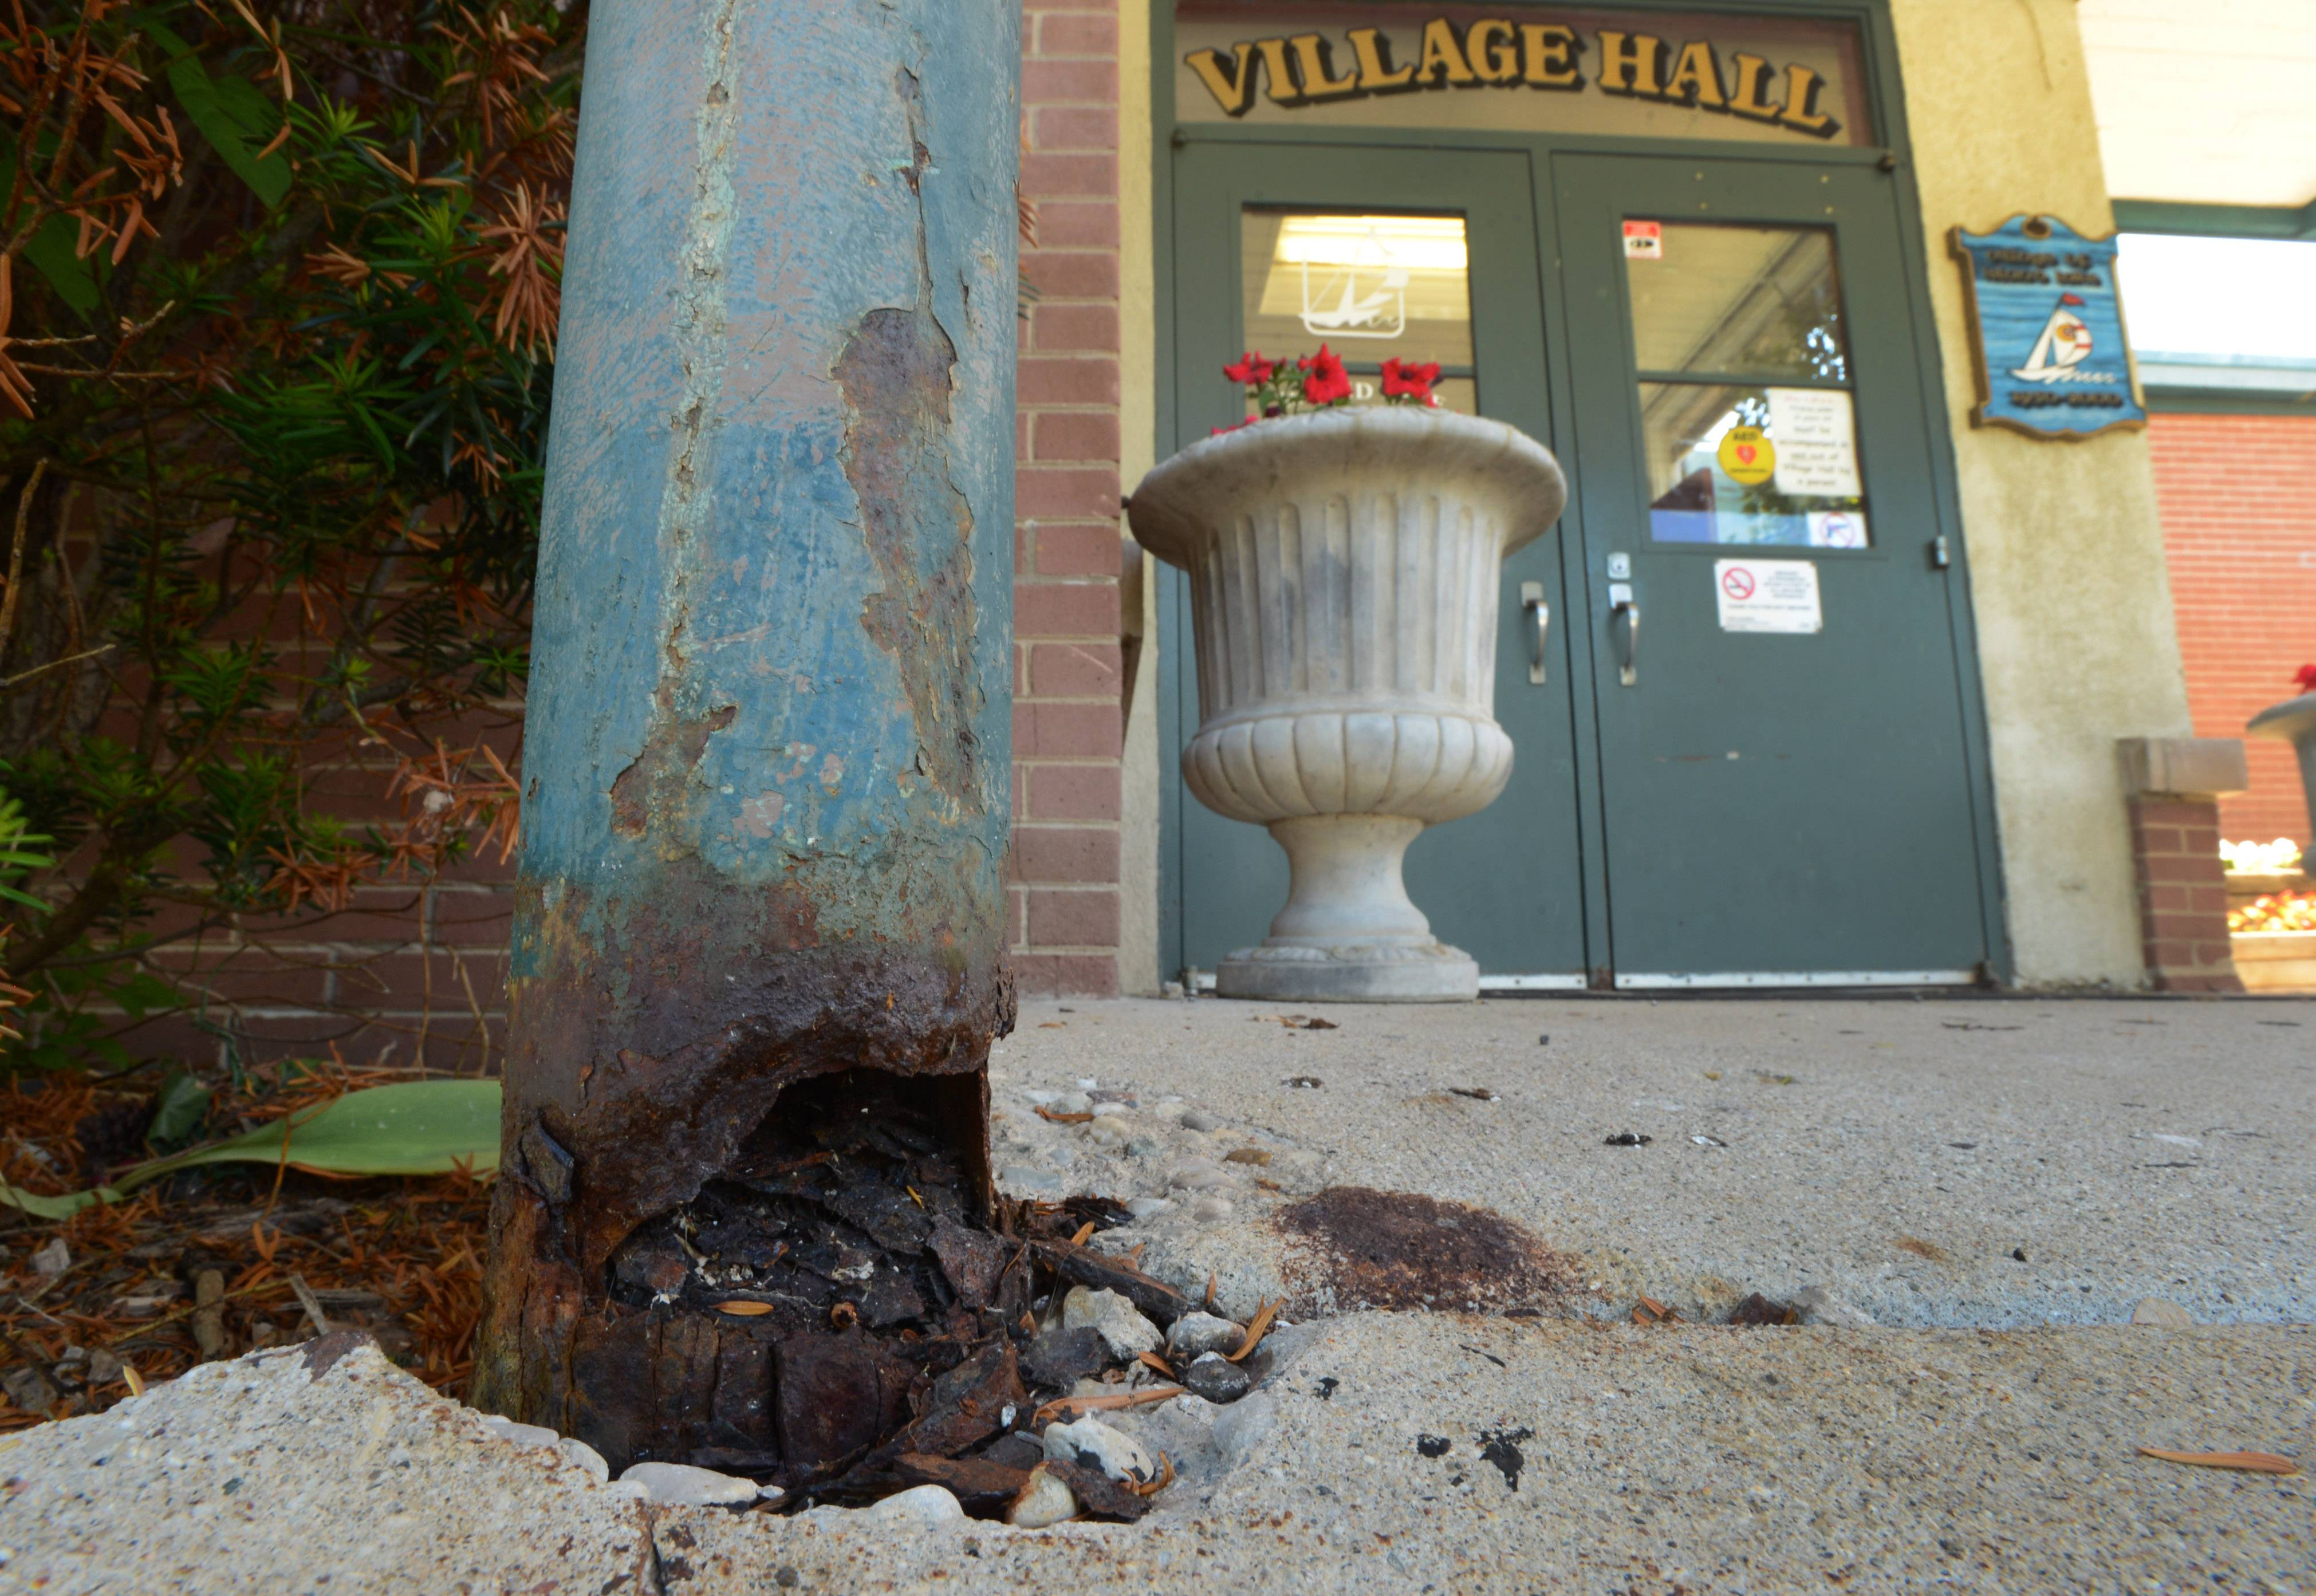 Deteriorating columns holding up the canopy in front of the Island Lake Village Hall are on the list of repairs for the building.